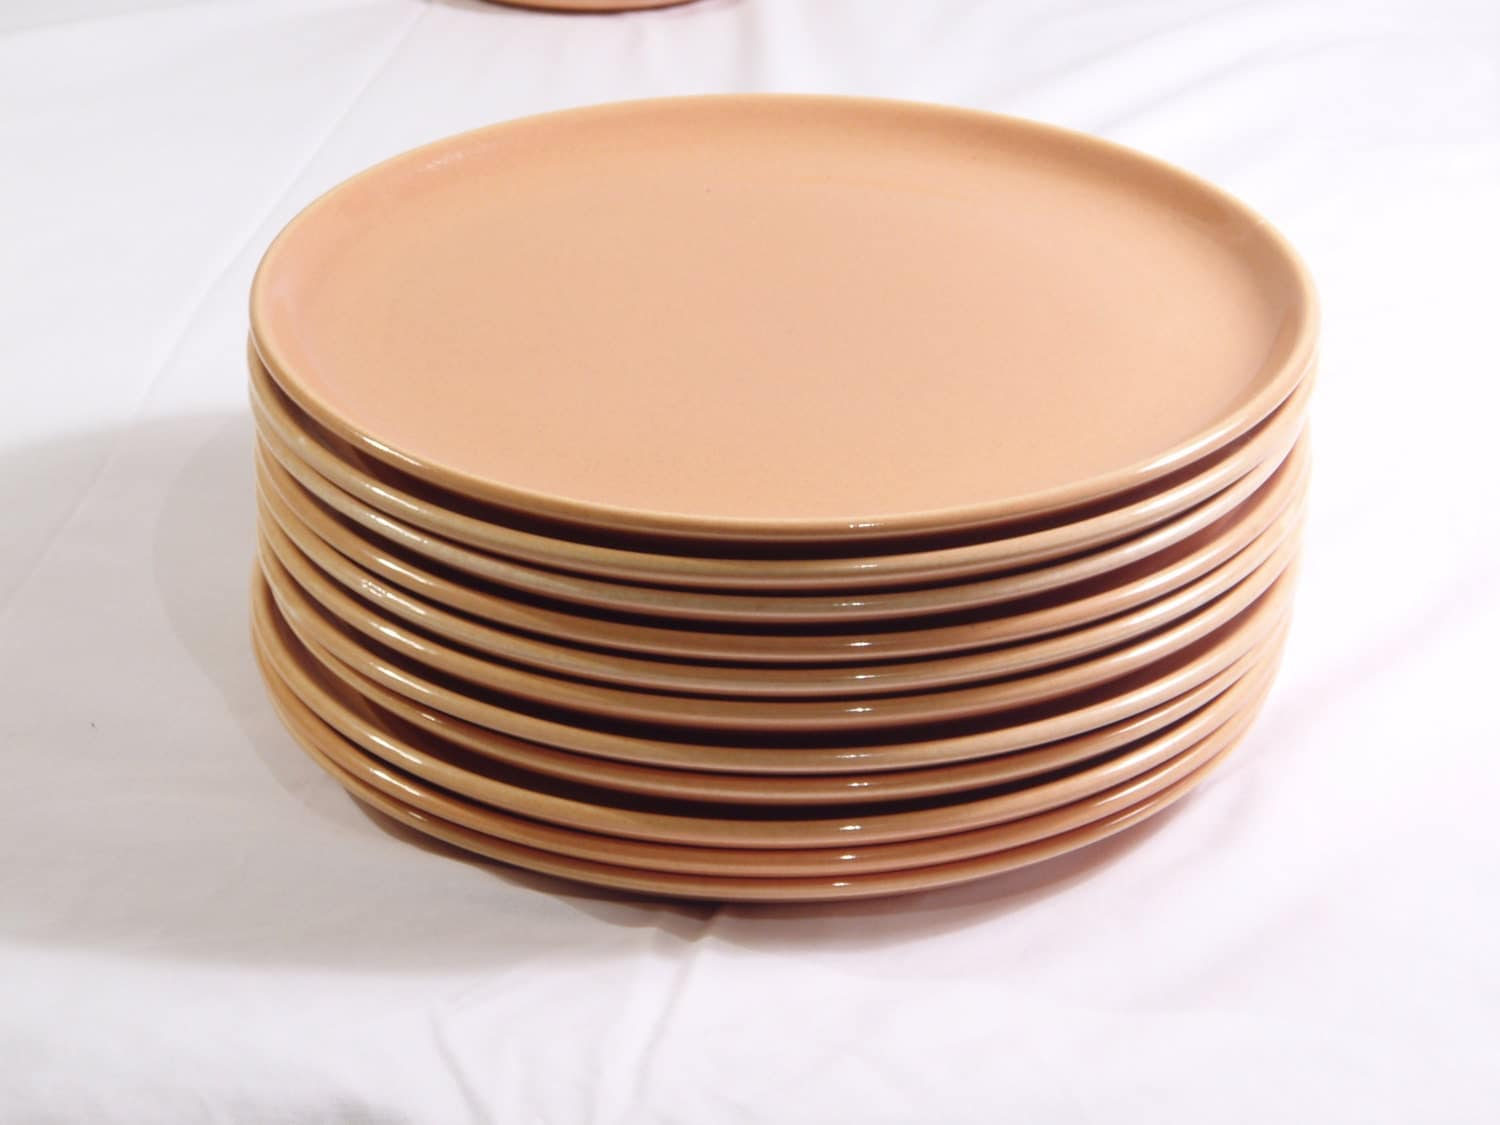 american modern dinnerware by russel wright design for everyone Russel wright is an icon of mid century industrial design perhaps most known for his dinnerware, he designed furniture and other housewares as well wright brought modernism into the average american home, often via the family dinner table take a look at the sophisticated color palette and graceful.